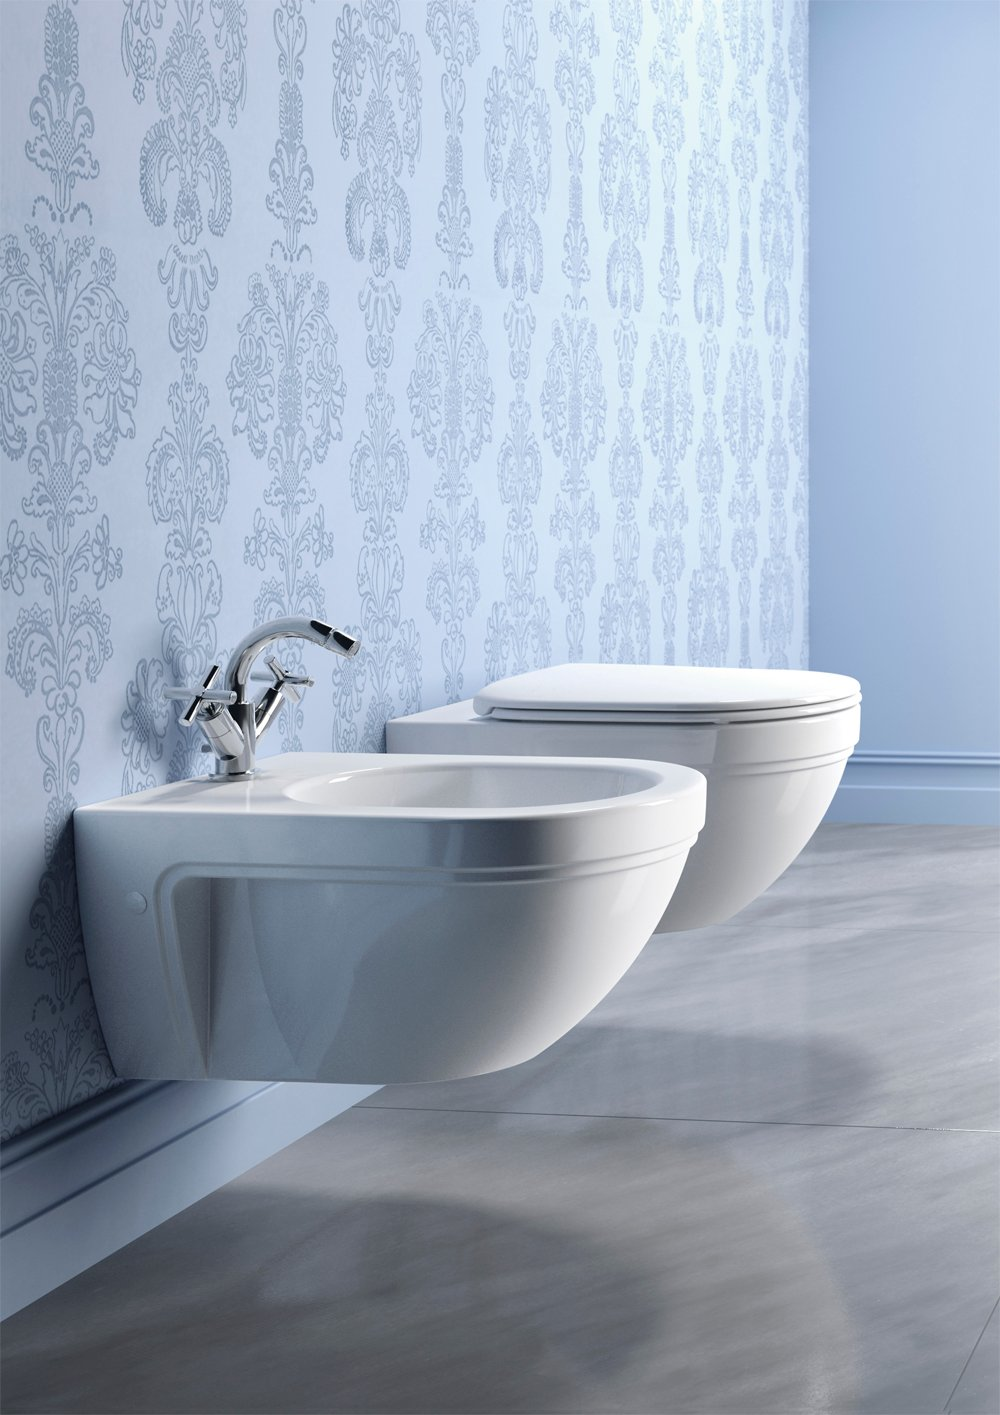 Wall hung toilet canova royal 55 canova royal collection for Ceramica catalano